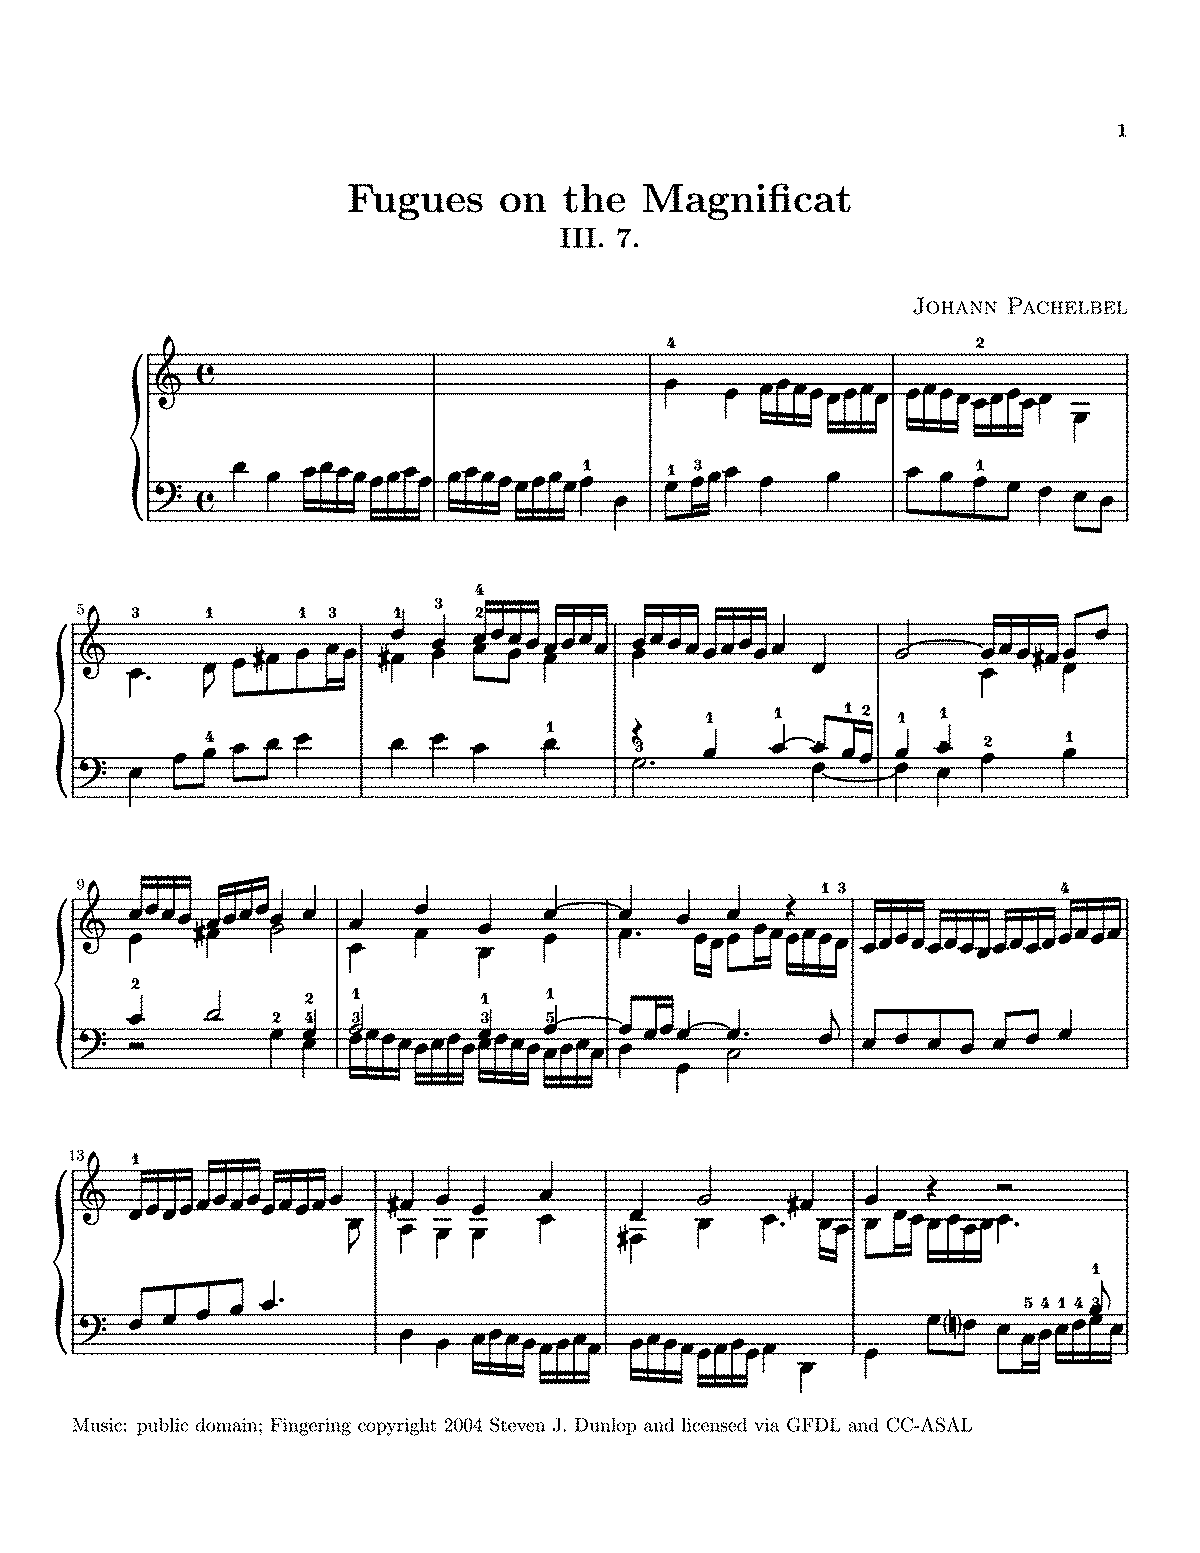 Fugue-3-7-let.pdf